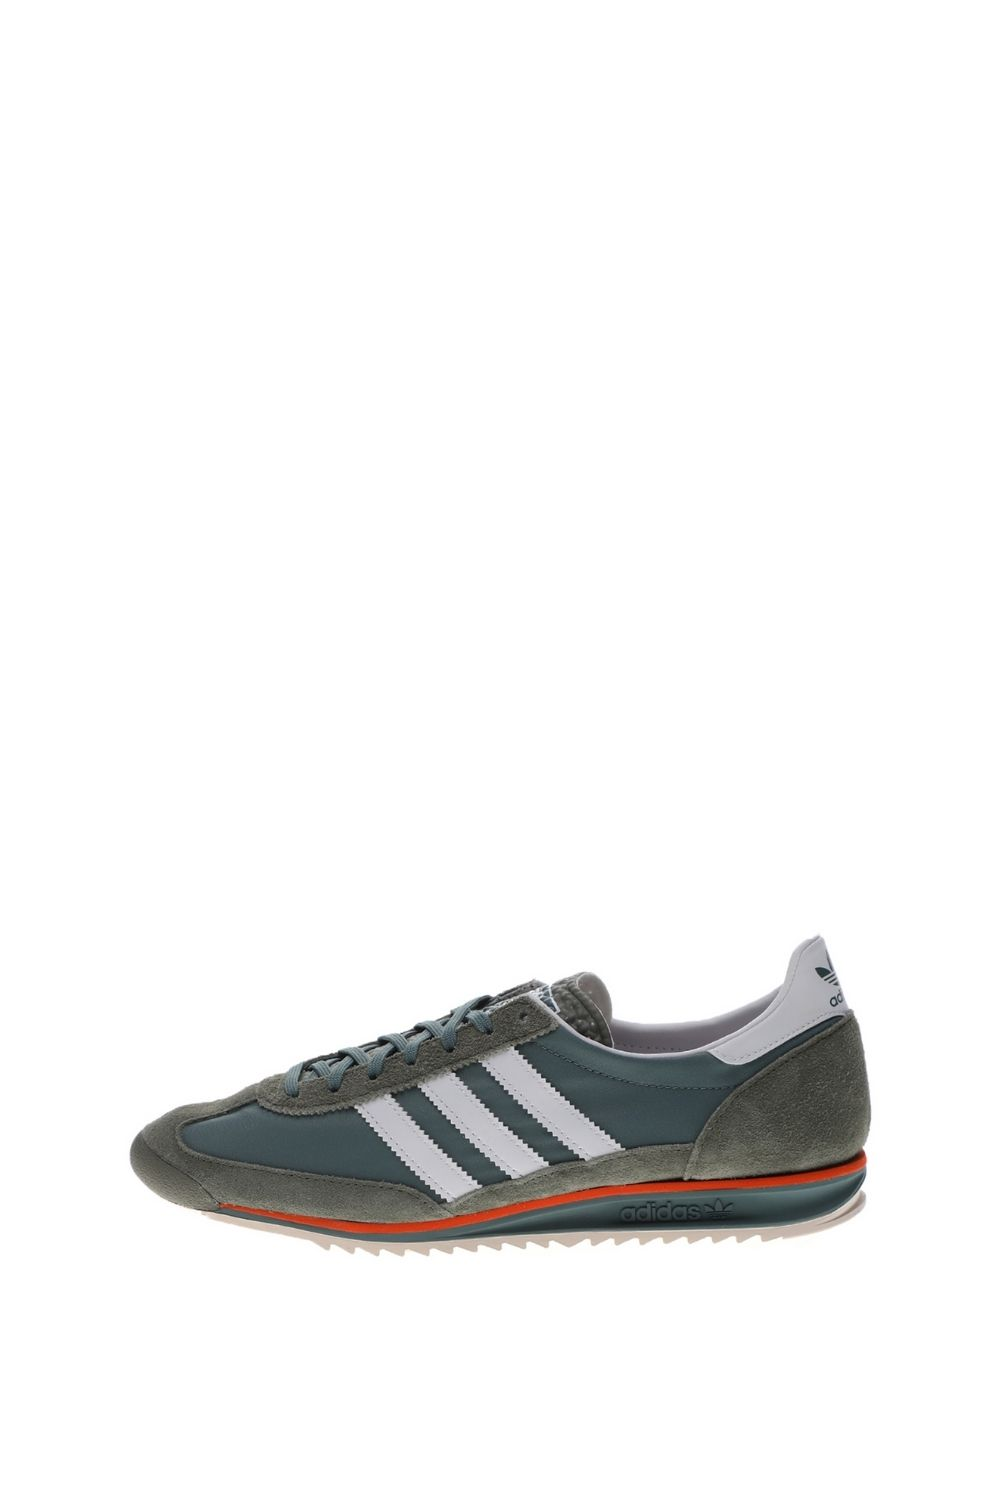 adidas Originals - Ανδρικά sneakers adidas Originals EG5198 SL 72 πράσινα λευκά